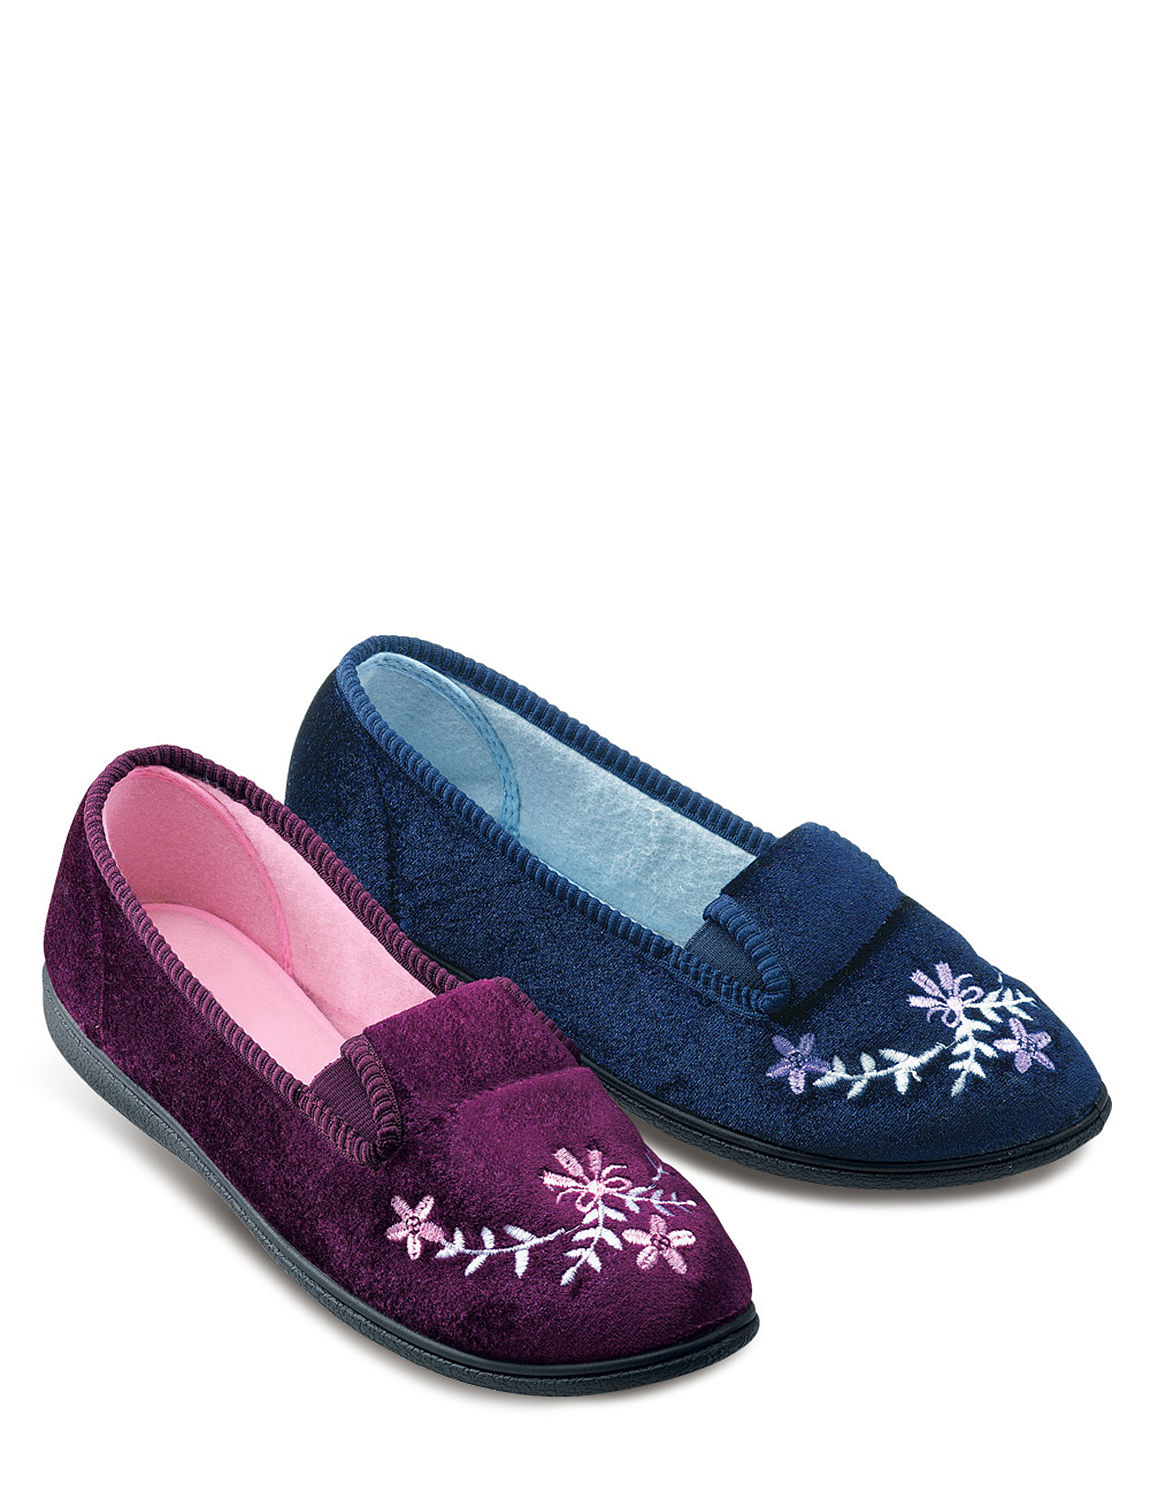 Ladies Velour Embroidered Slippers Ladieswear